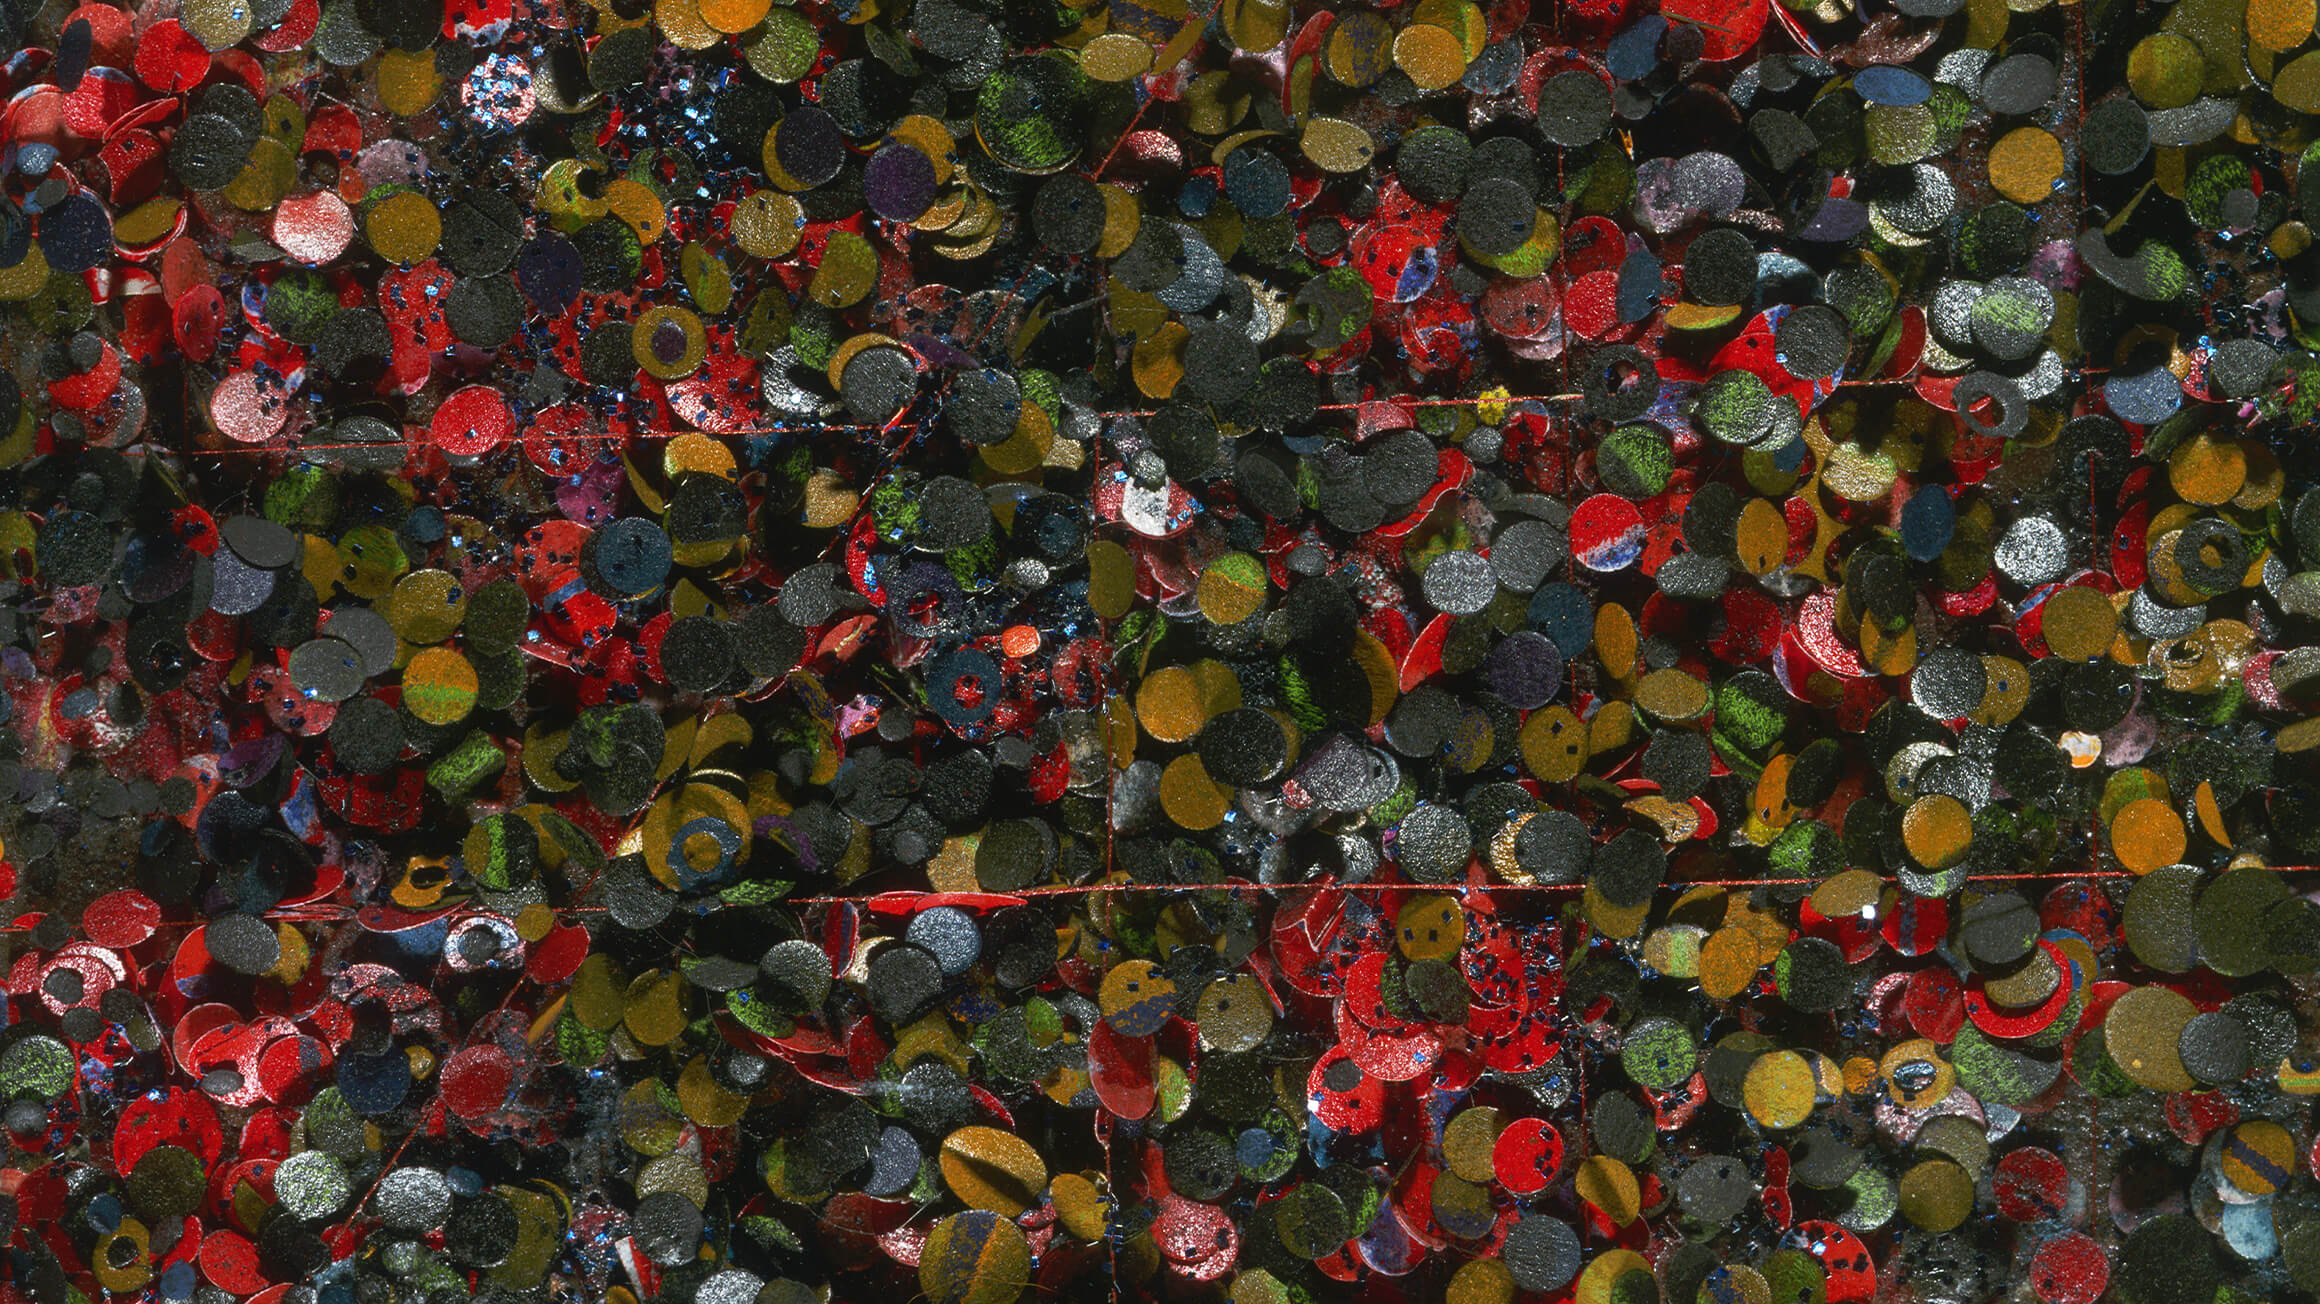 Untitled No. 89 (detail), 1977, by Howardena Pindell